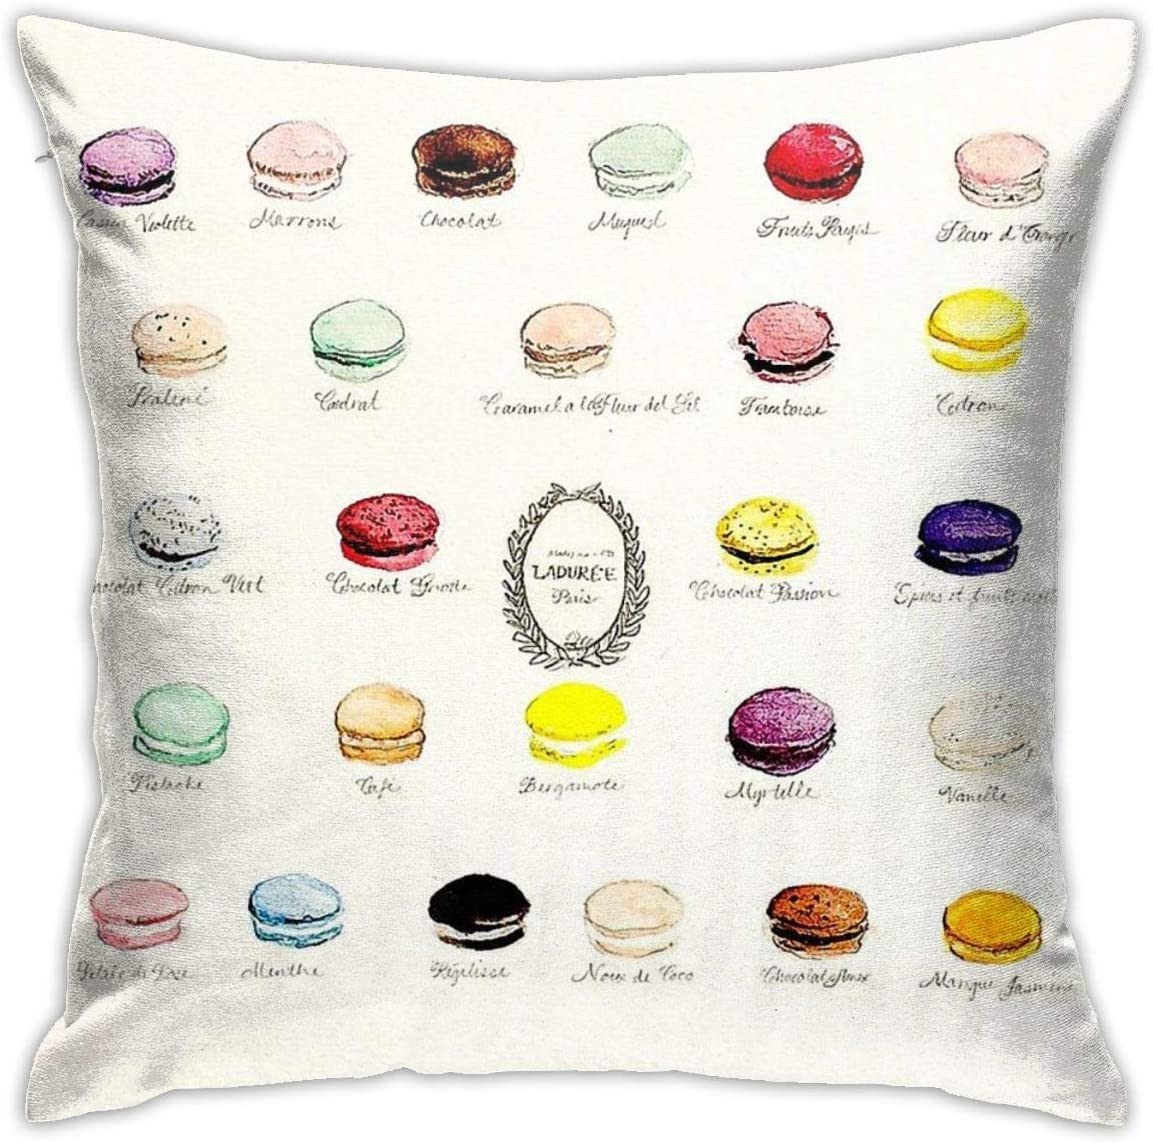 Not Applicable Laduree Macarons Flavor Menu Bedroom Sofa Decorative Cushion Throw Pillow Cover Case 18 X 18 Inch Amazon Co Uk Kitchen Home